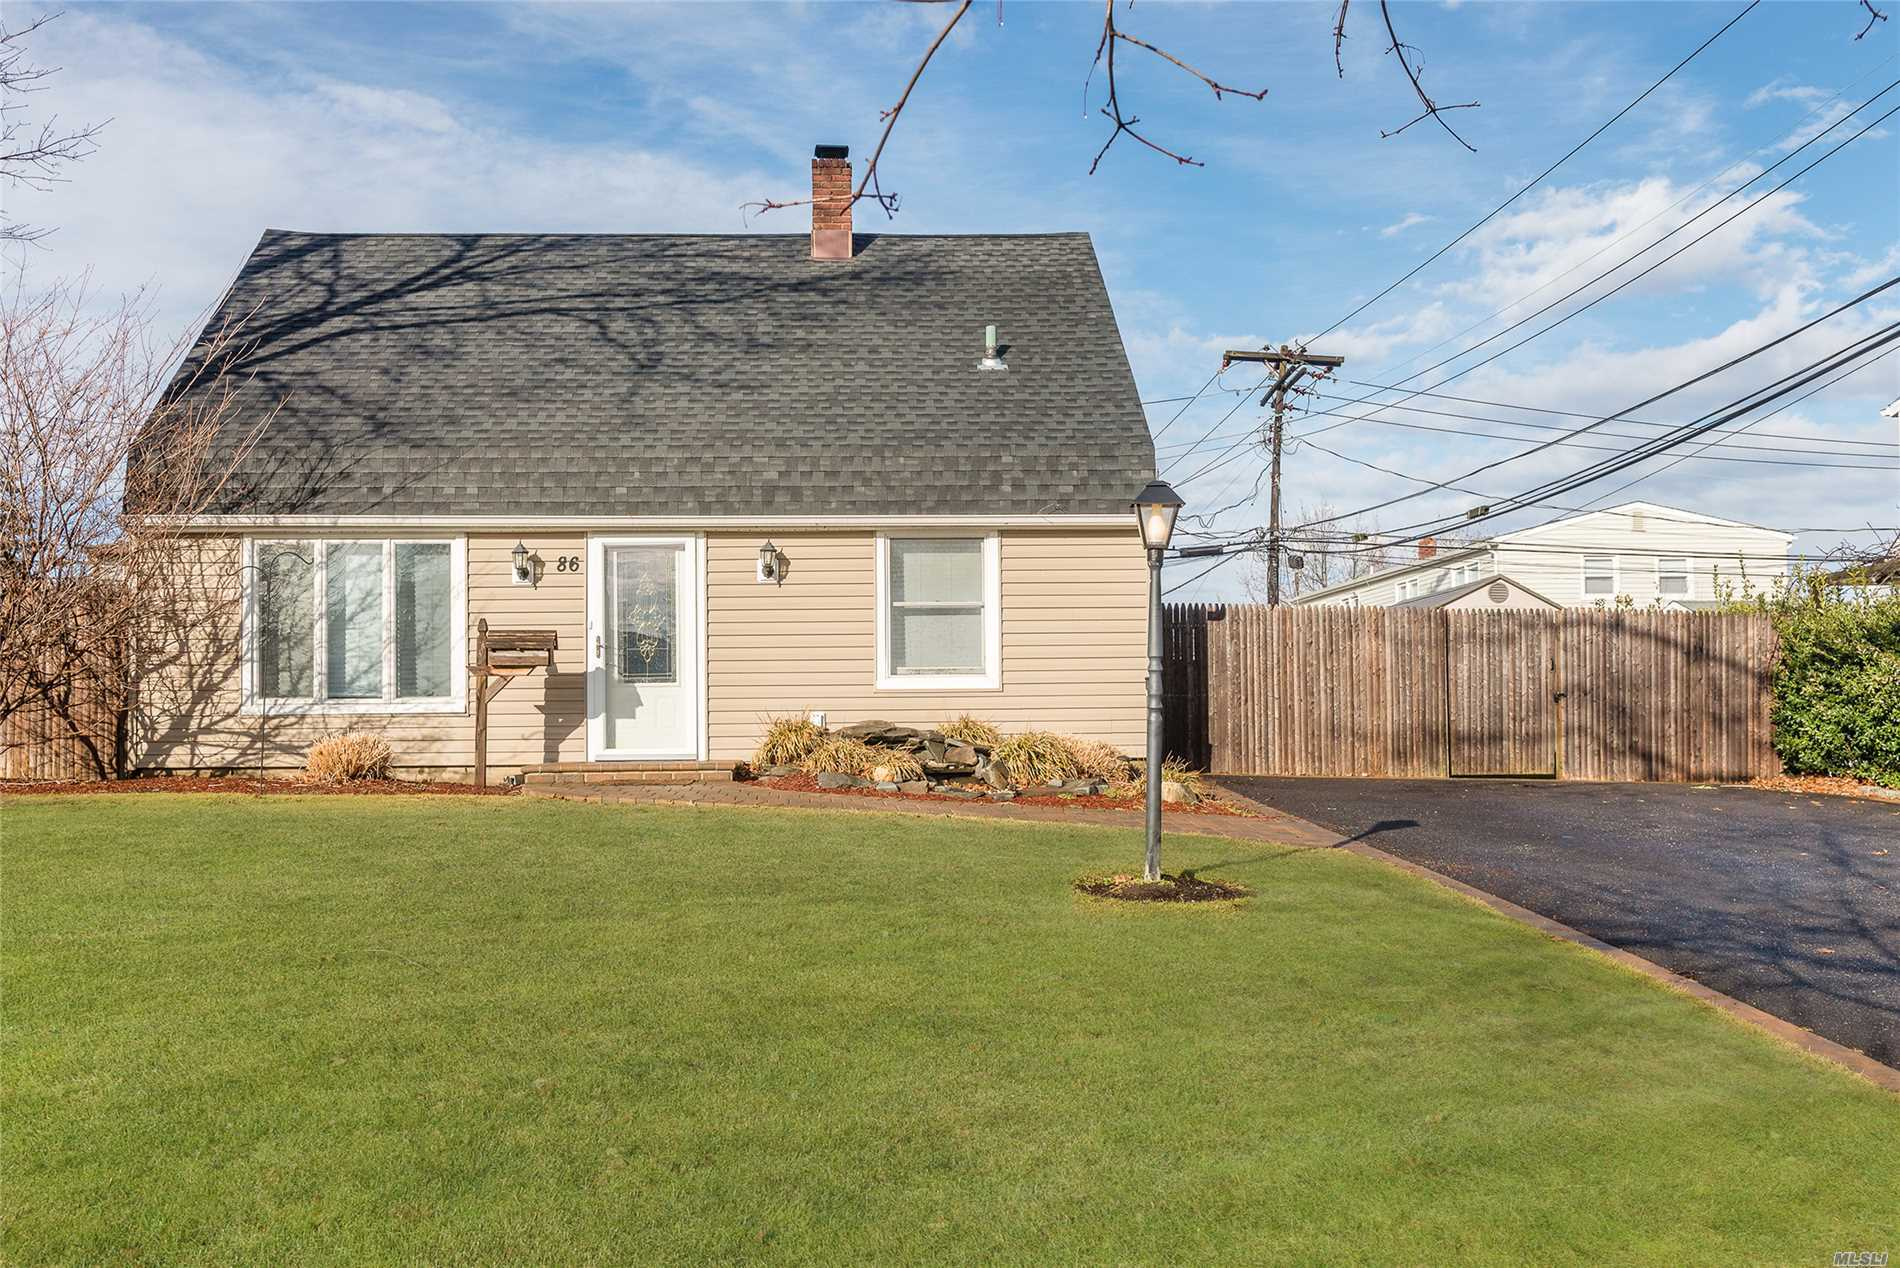 86 N Parkside Dr - Levittown, New York